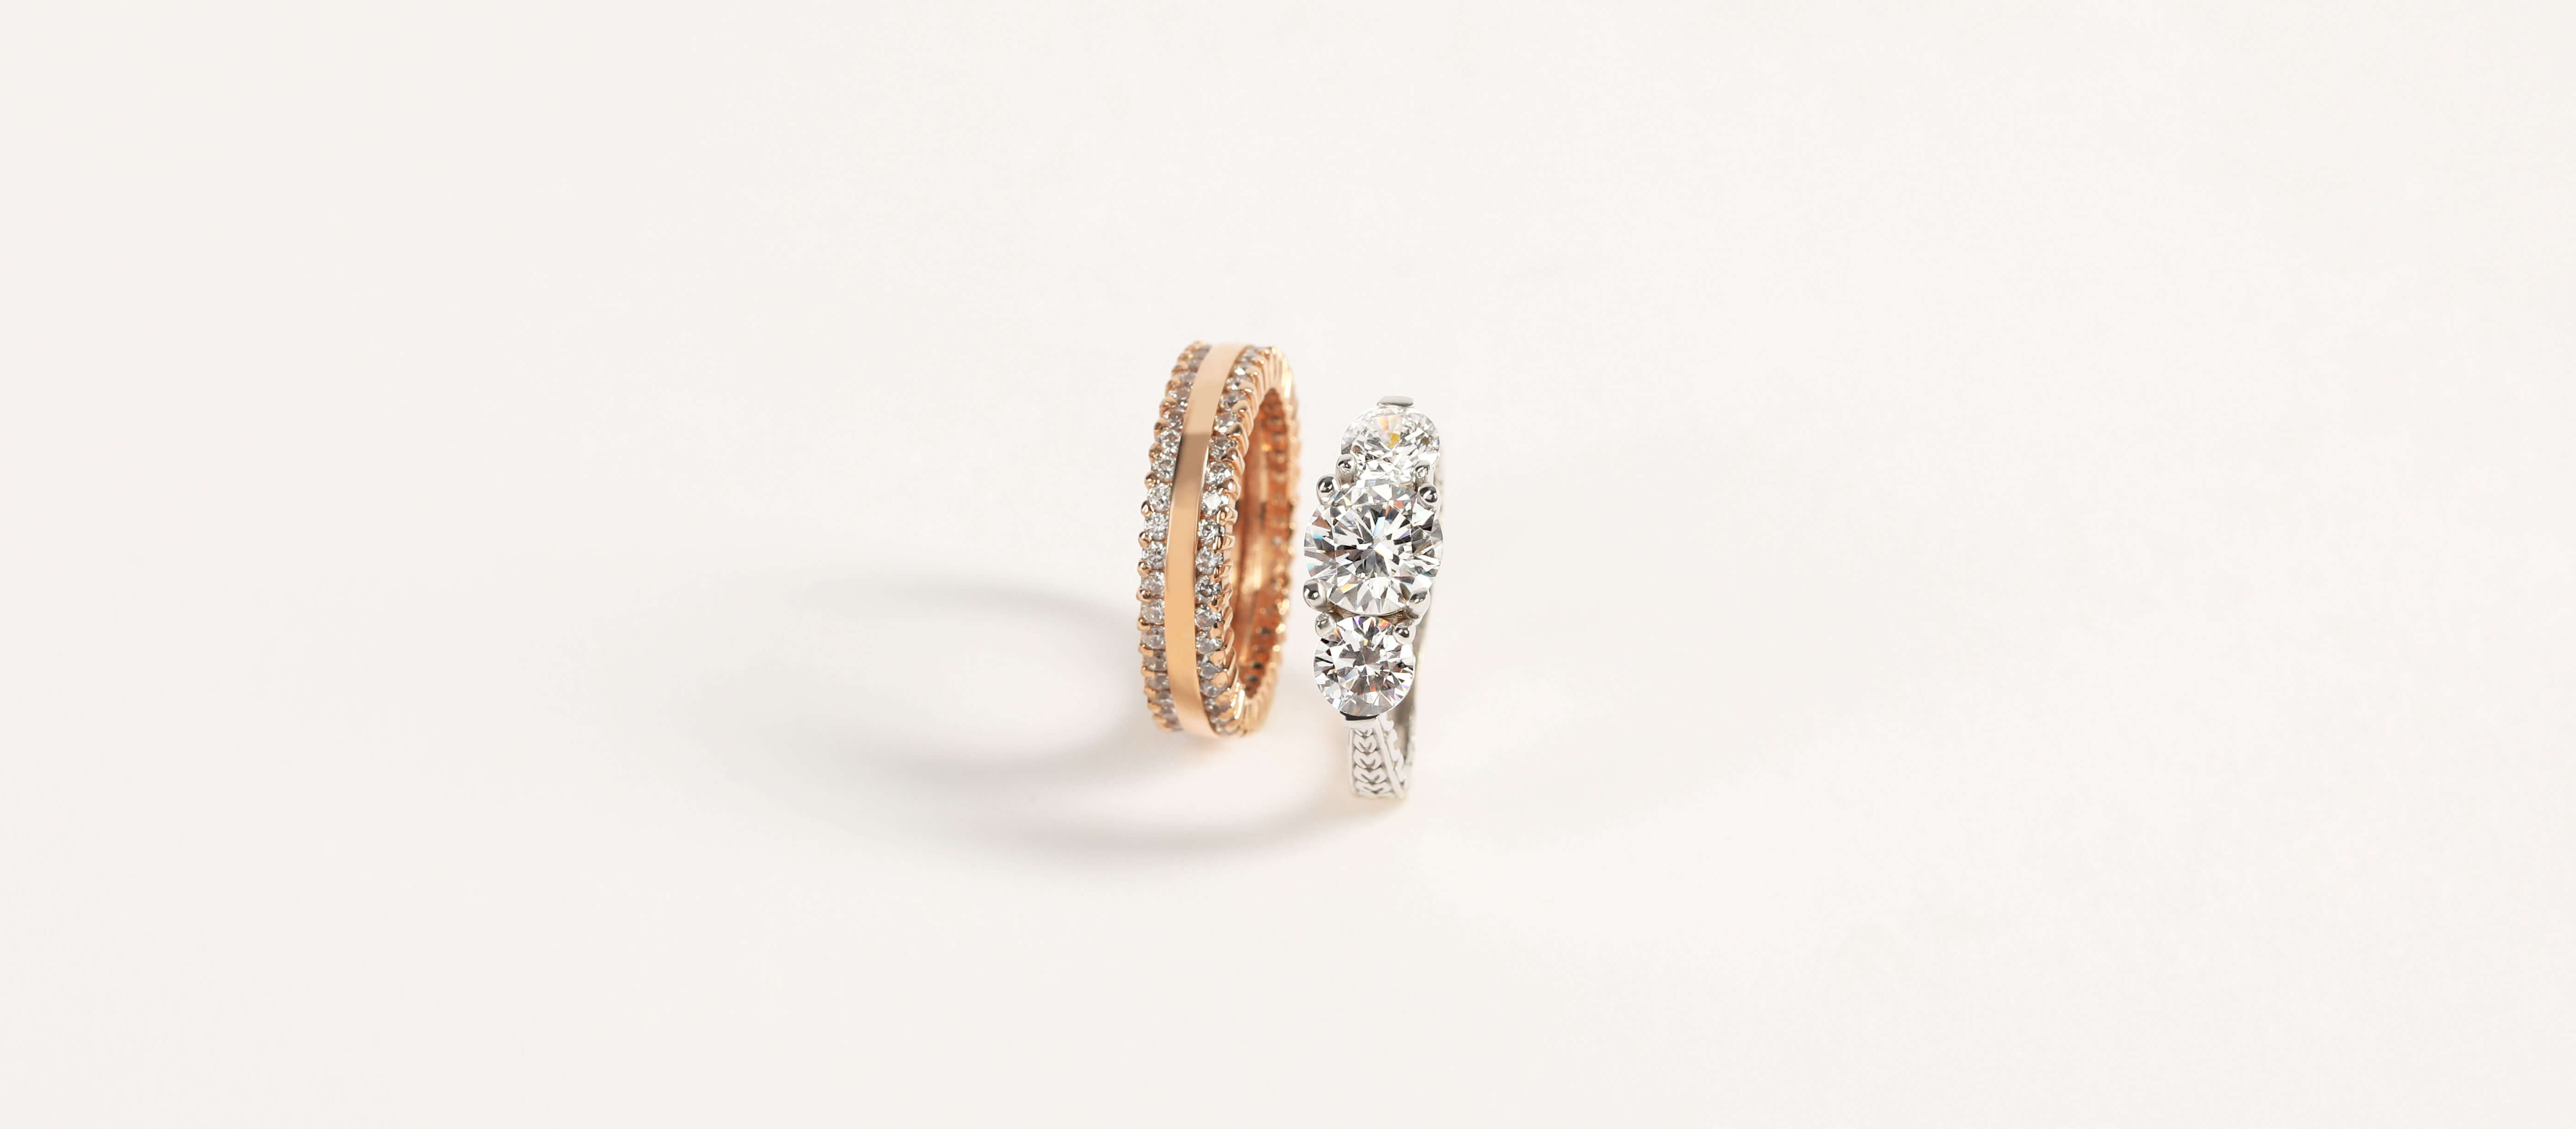 A Diamond Nexus engagement ring and wedding band in mixed metals.